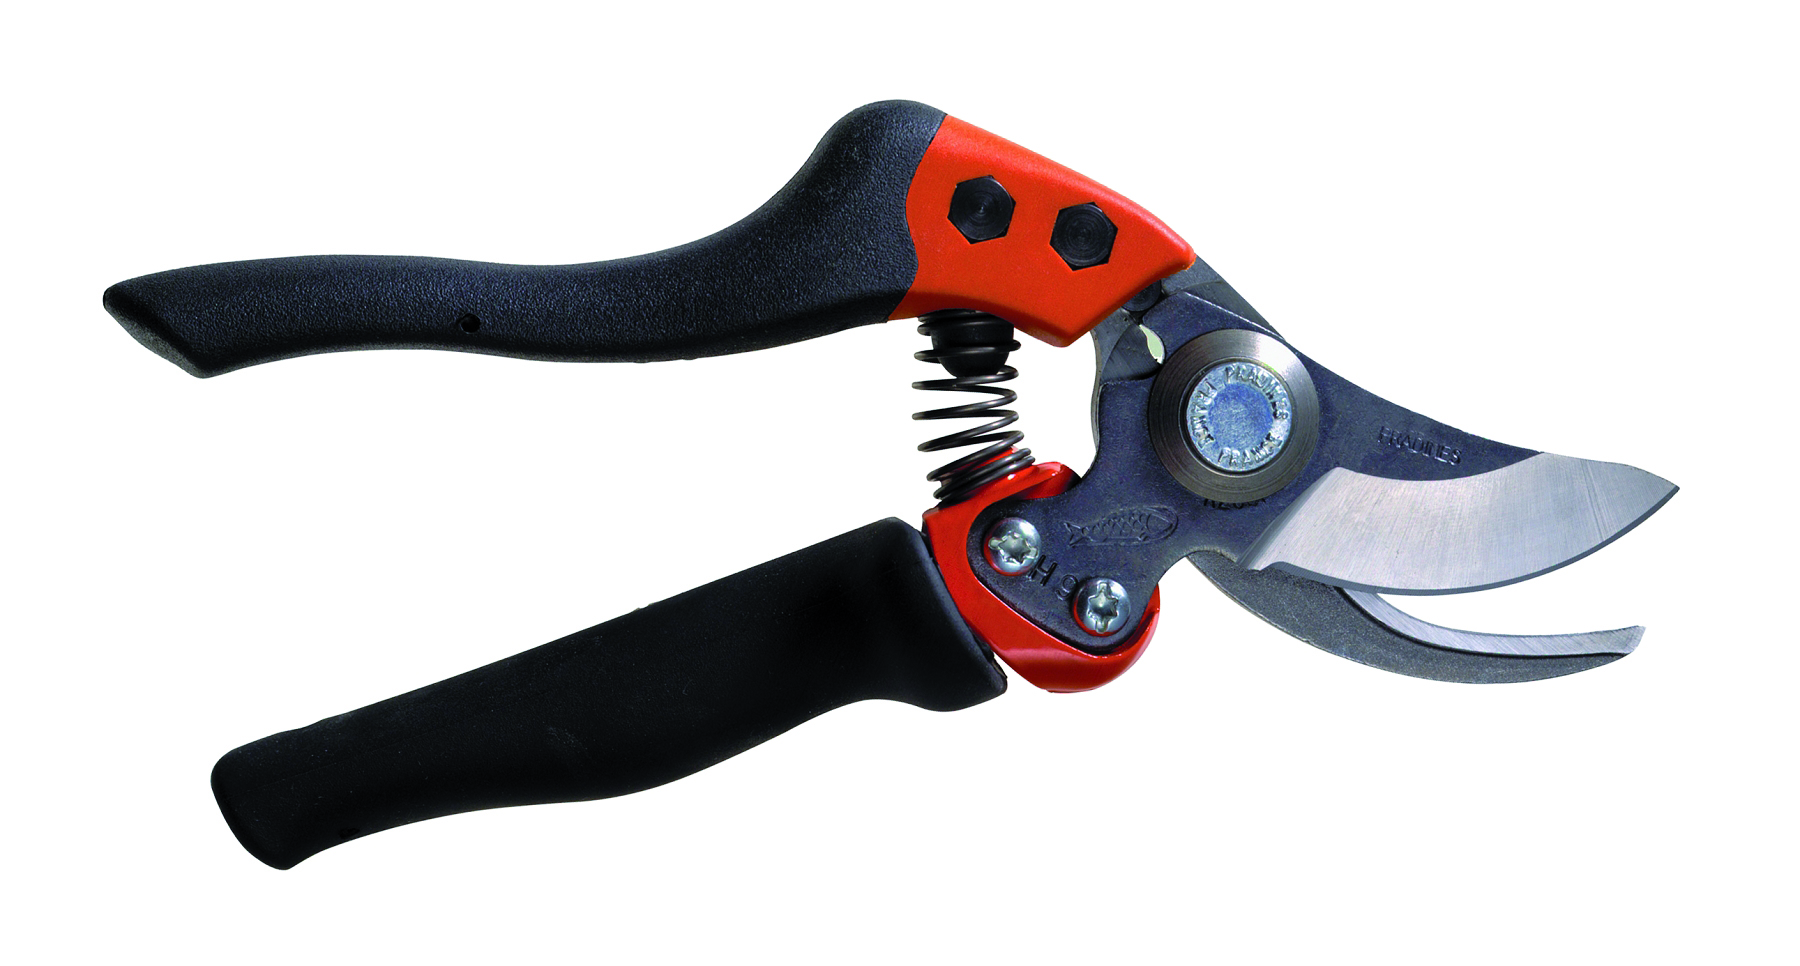 Bahco Bypass Secateurs with Rotating Handle